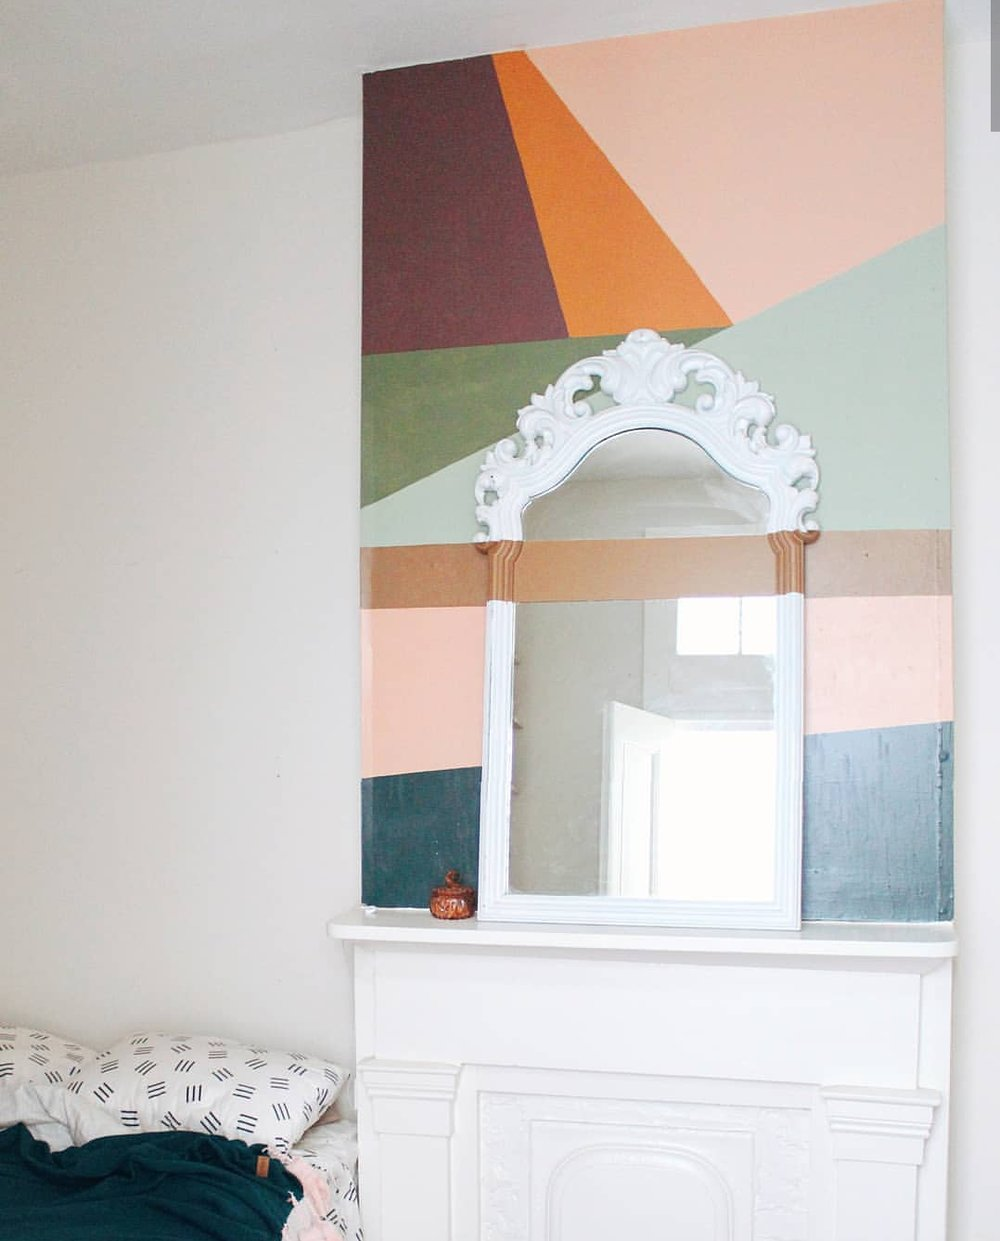 Simple color blocking with a strip of paint across the mirror. Little details that can make a space unique.